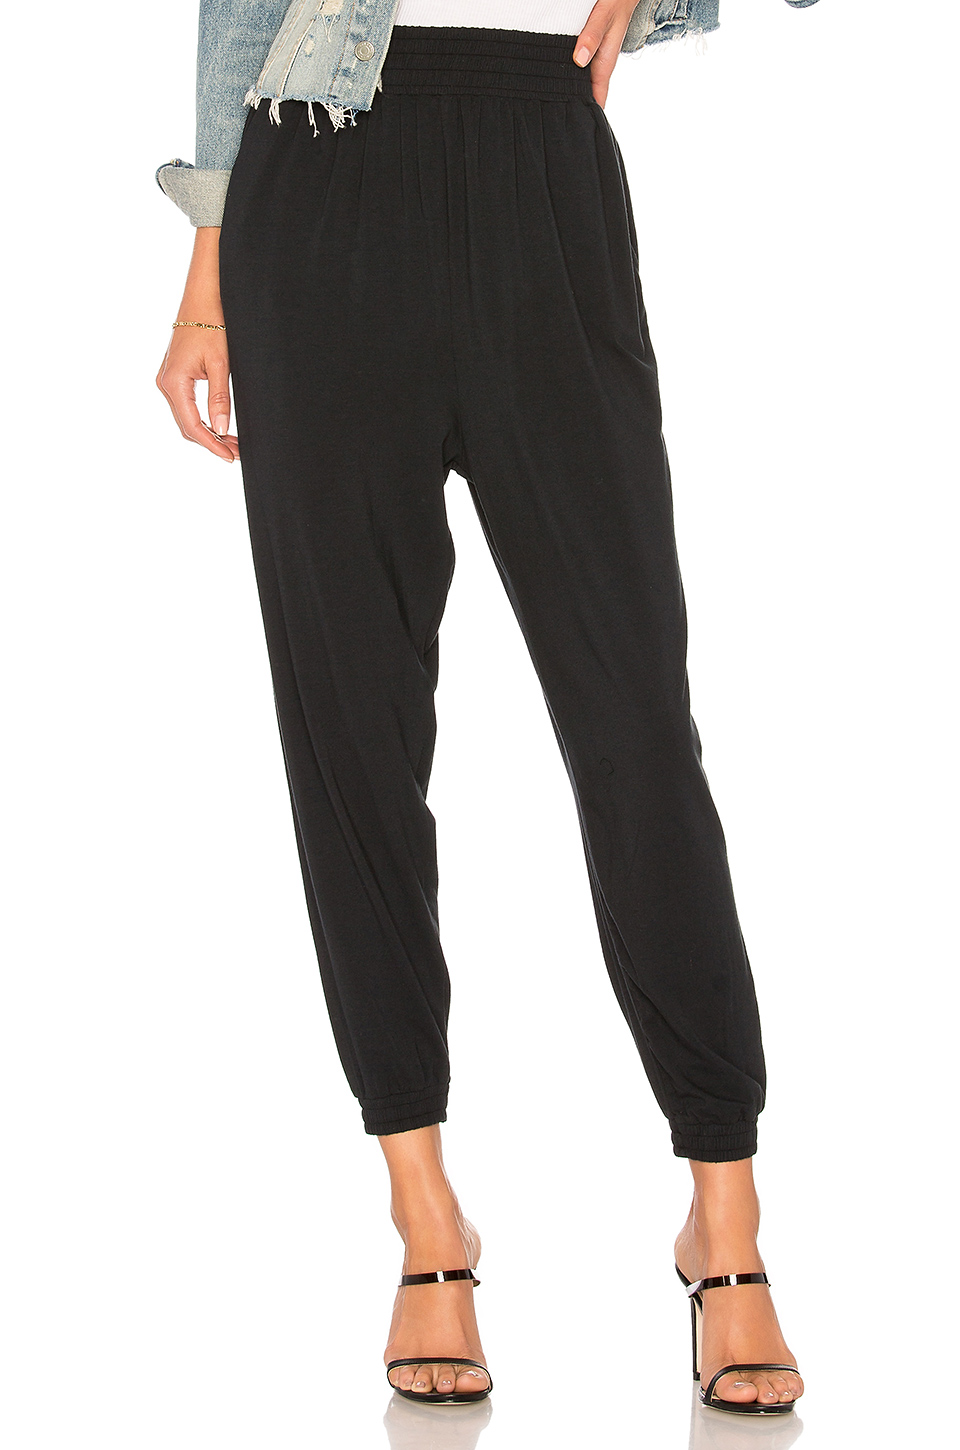 Bobi Draped Modal Jersey Jogger in Black